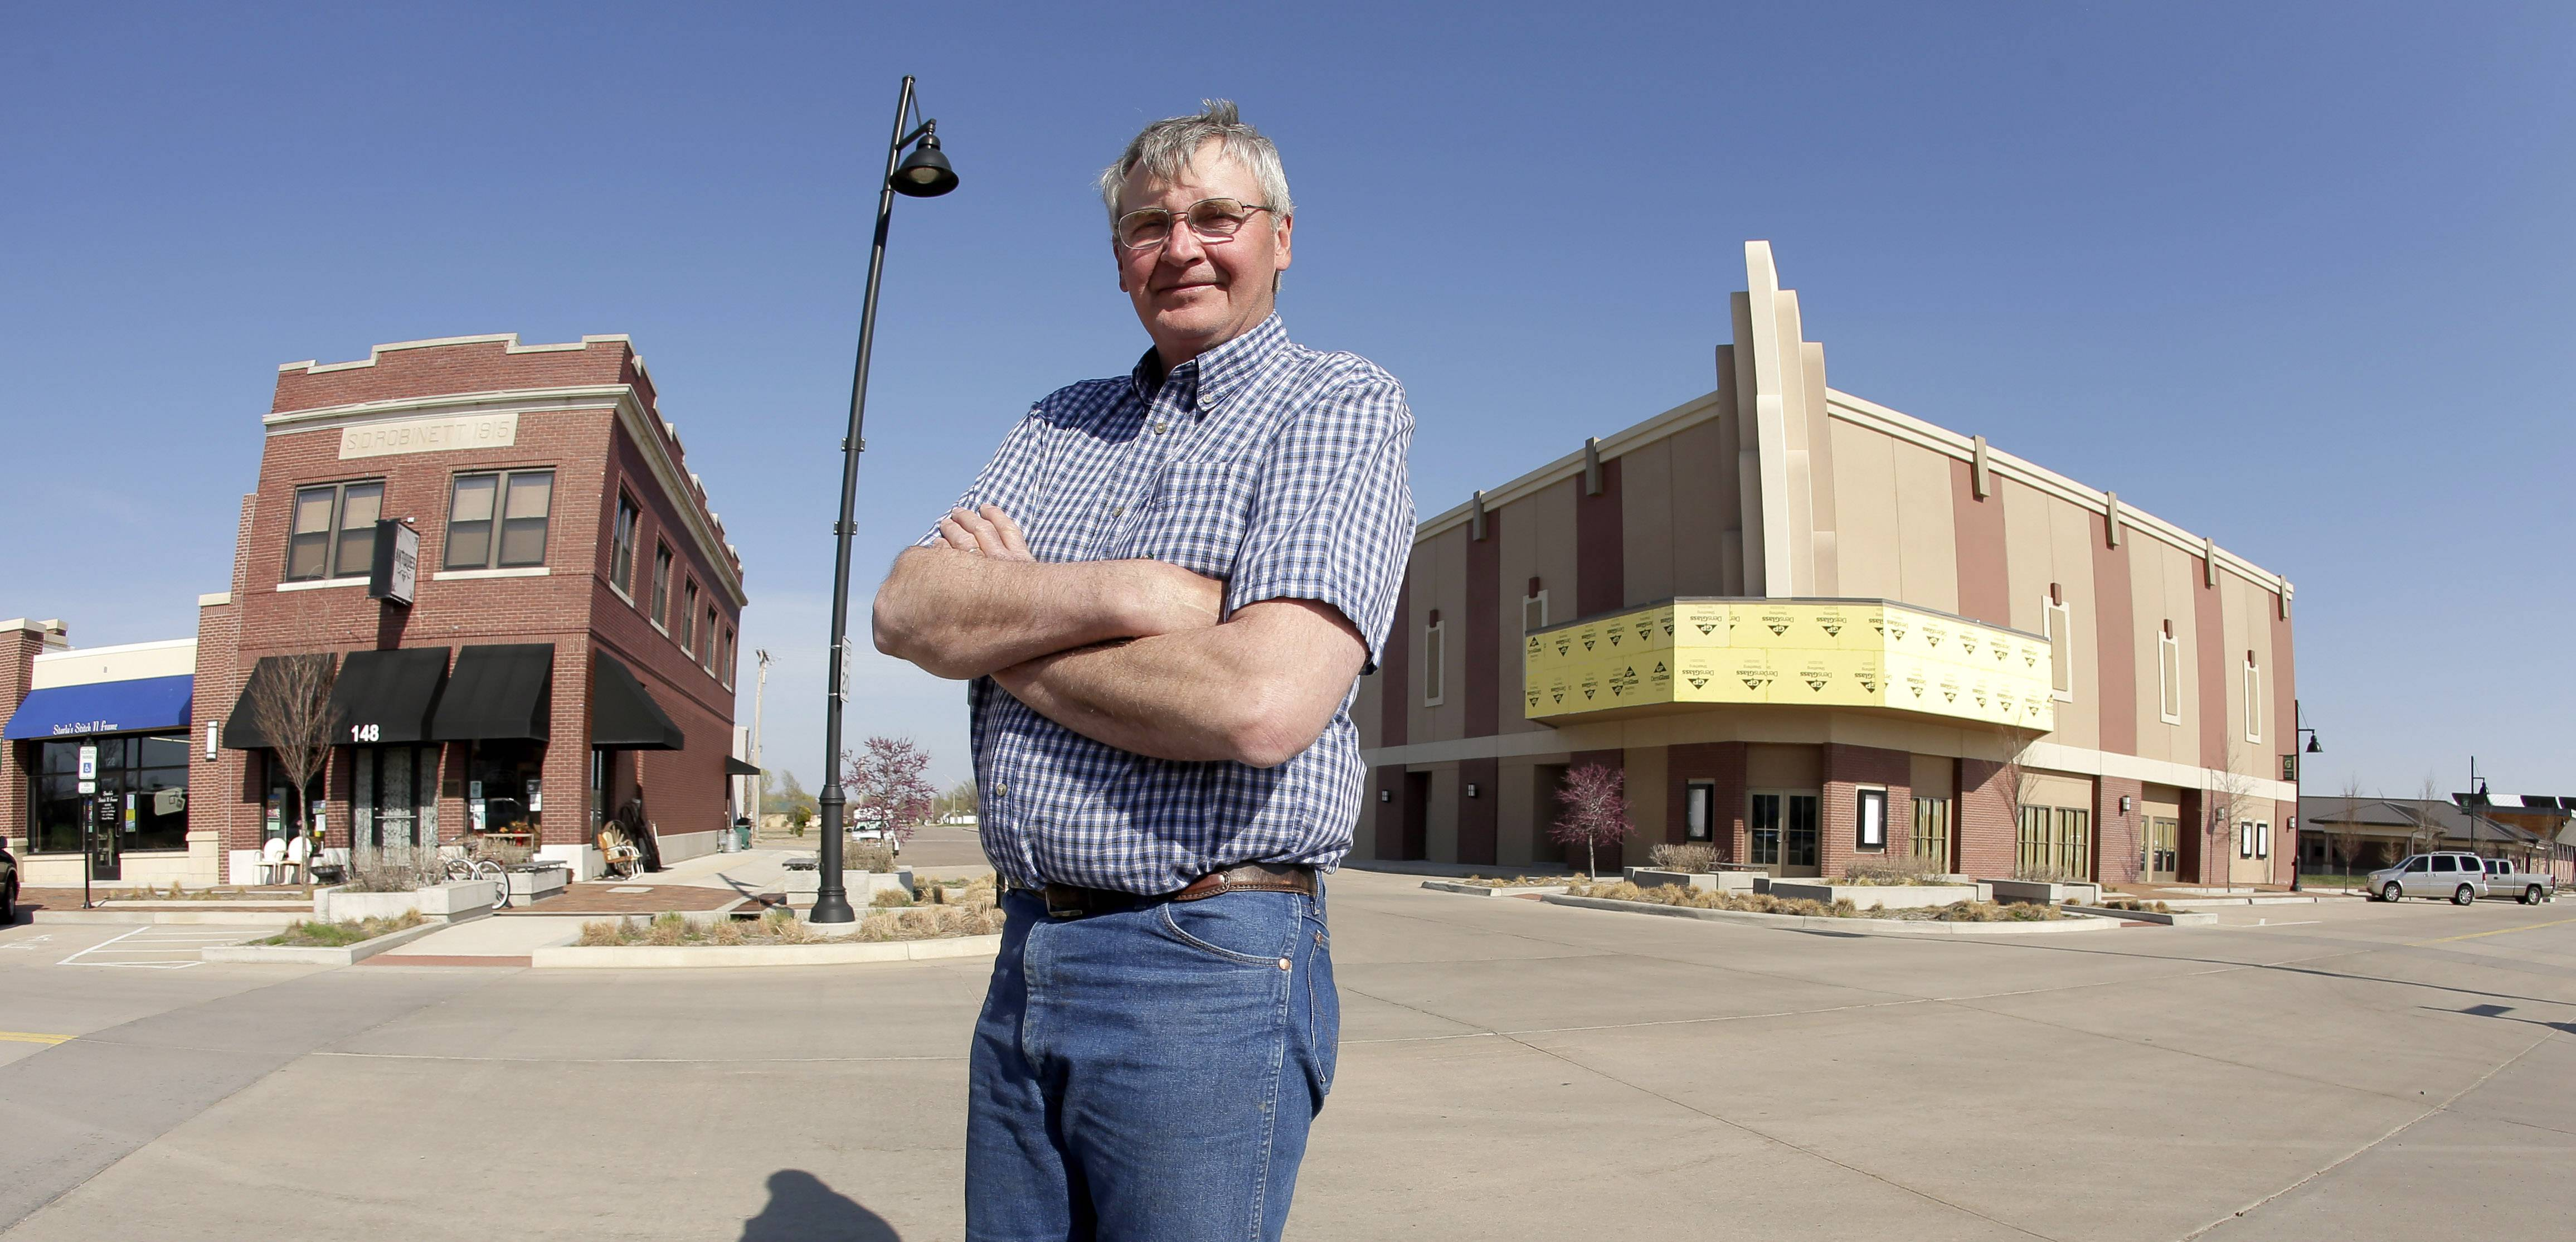 Mayor Bob Dixson stands with a soon-to-be completed community theater, at right, and the only downtown building to survive a massive tornado in Greensburg, Kan. Seven years after an EF-5 tornado destroyed most of the community of 1,500, Dixson believes most of the town's current 850 residents are ready to move on and deal with the same sort of problems that plague most rural communities.